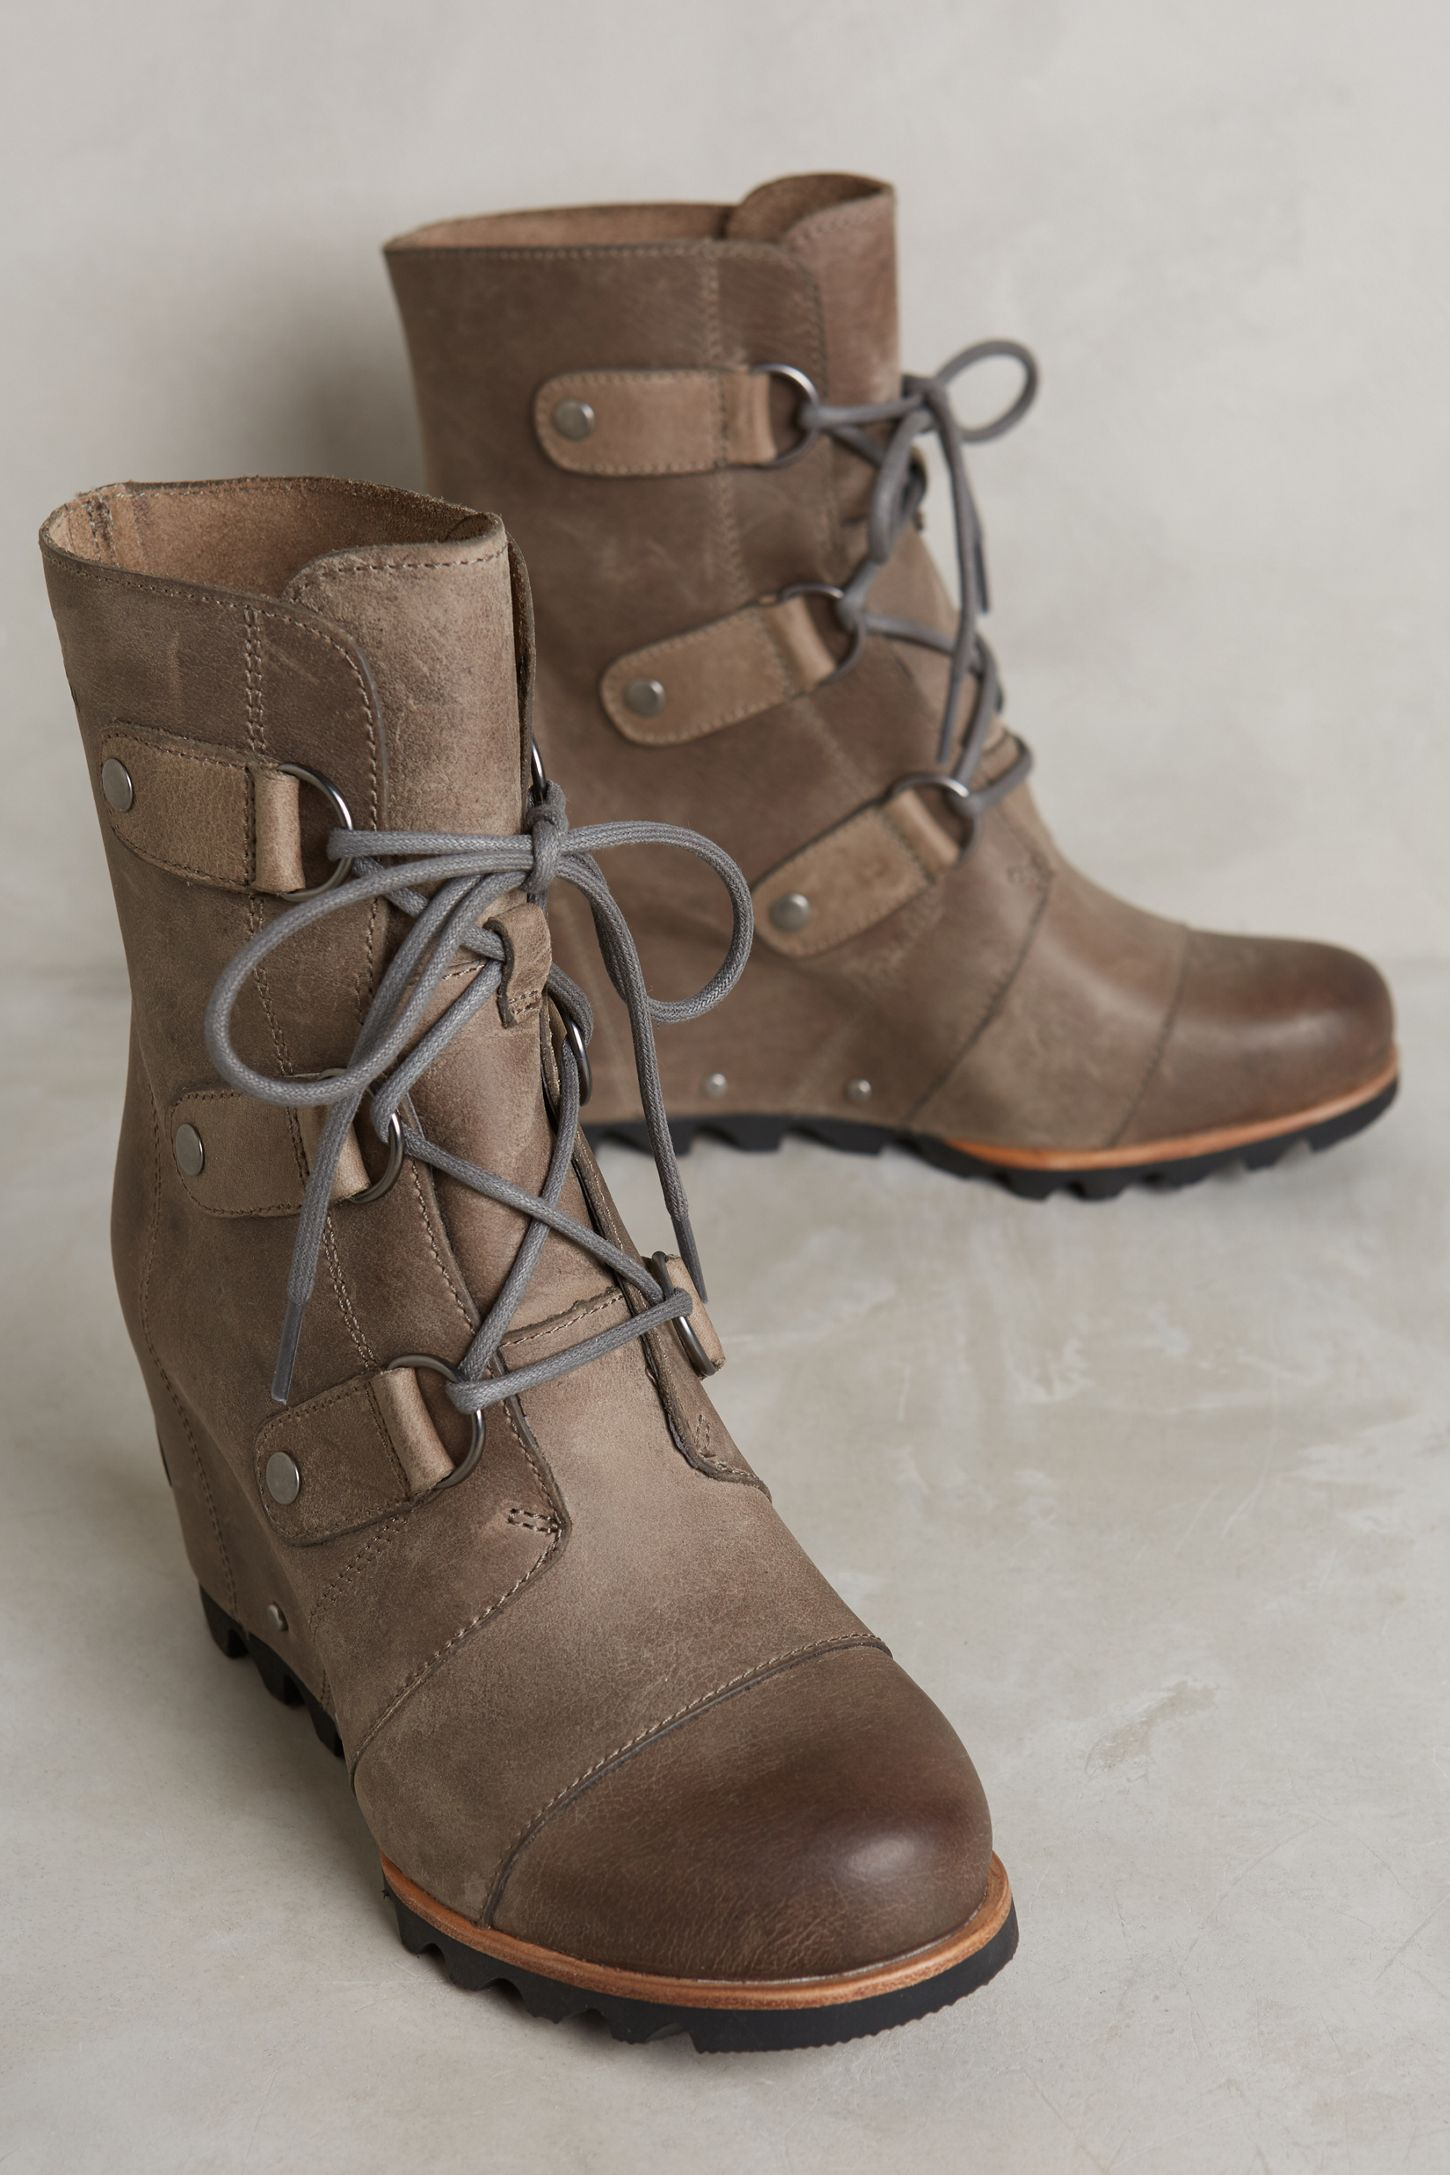 70703ad4781 Sorel Joan of Arctic Wedge Ankle Boots